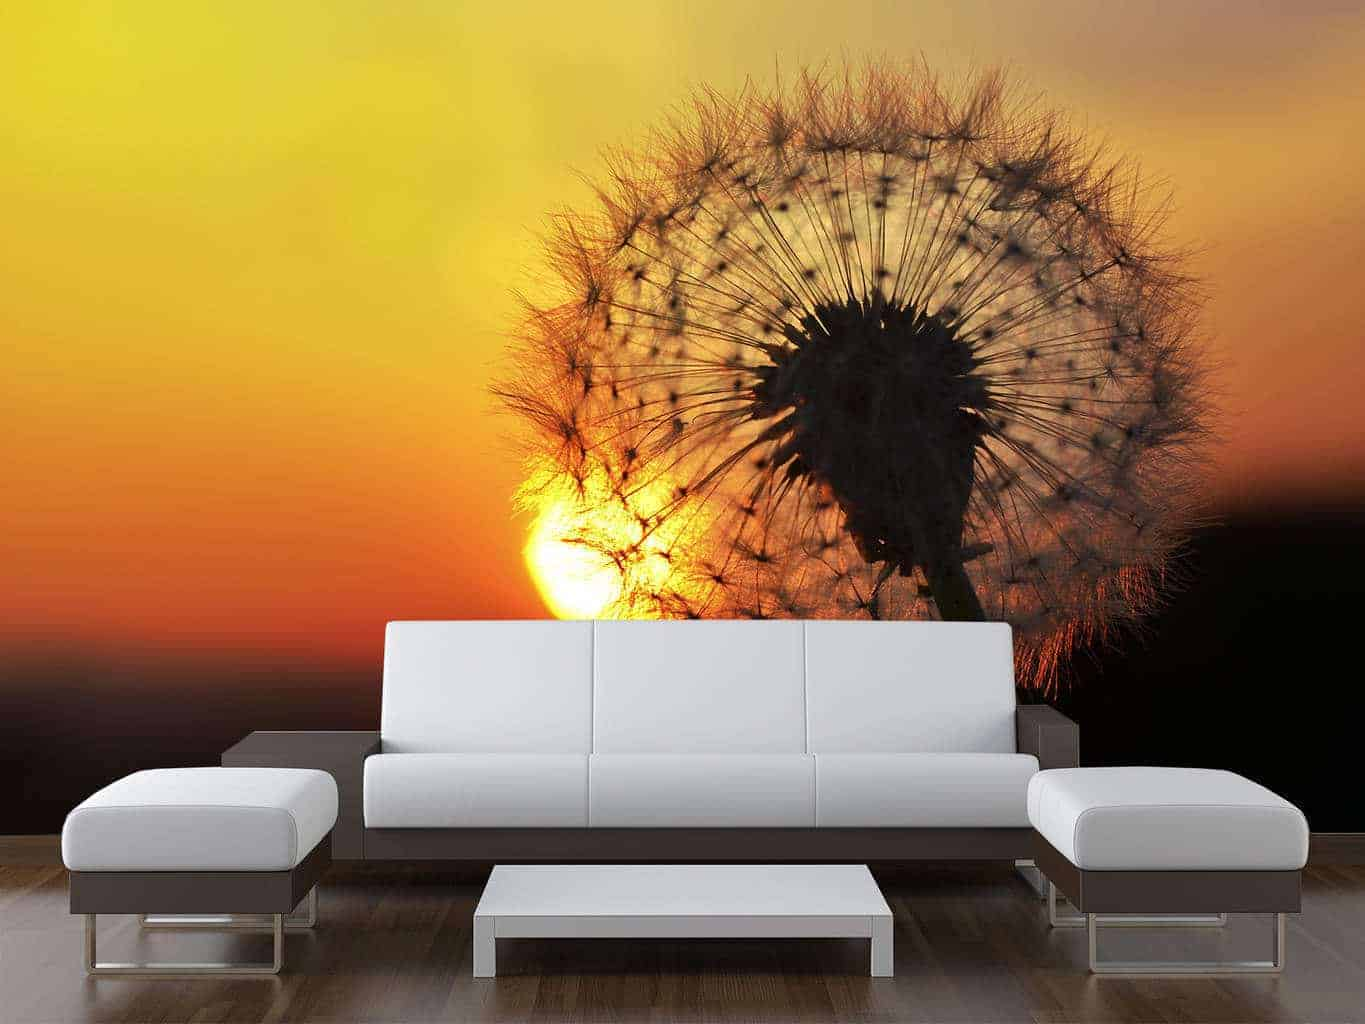 Dandelion sunset wall mural wall murals for Dandelion wall mural